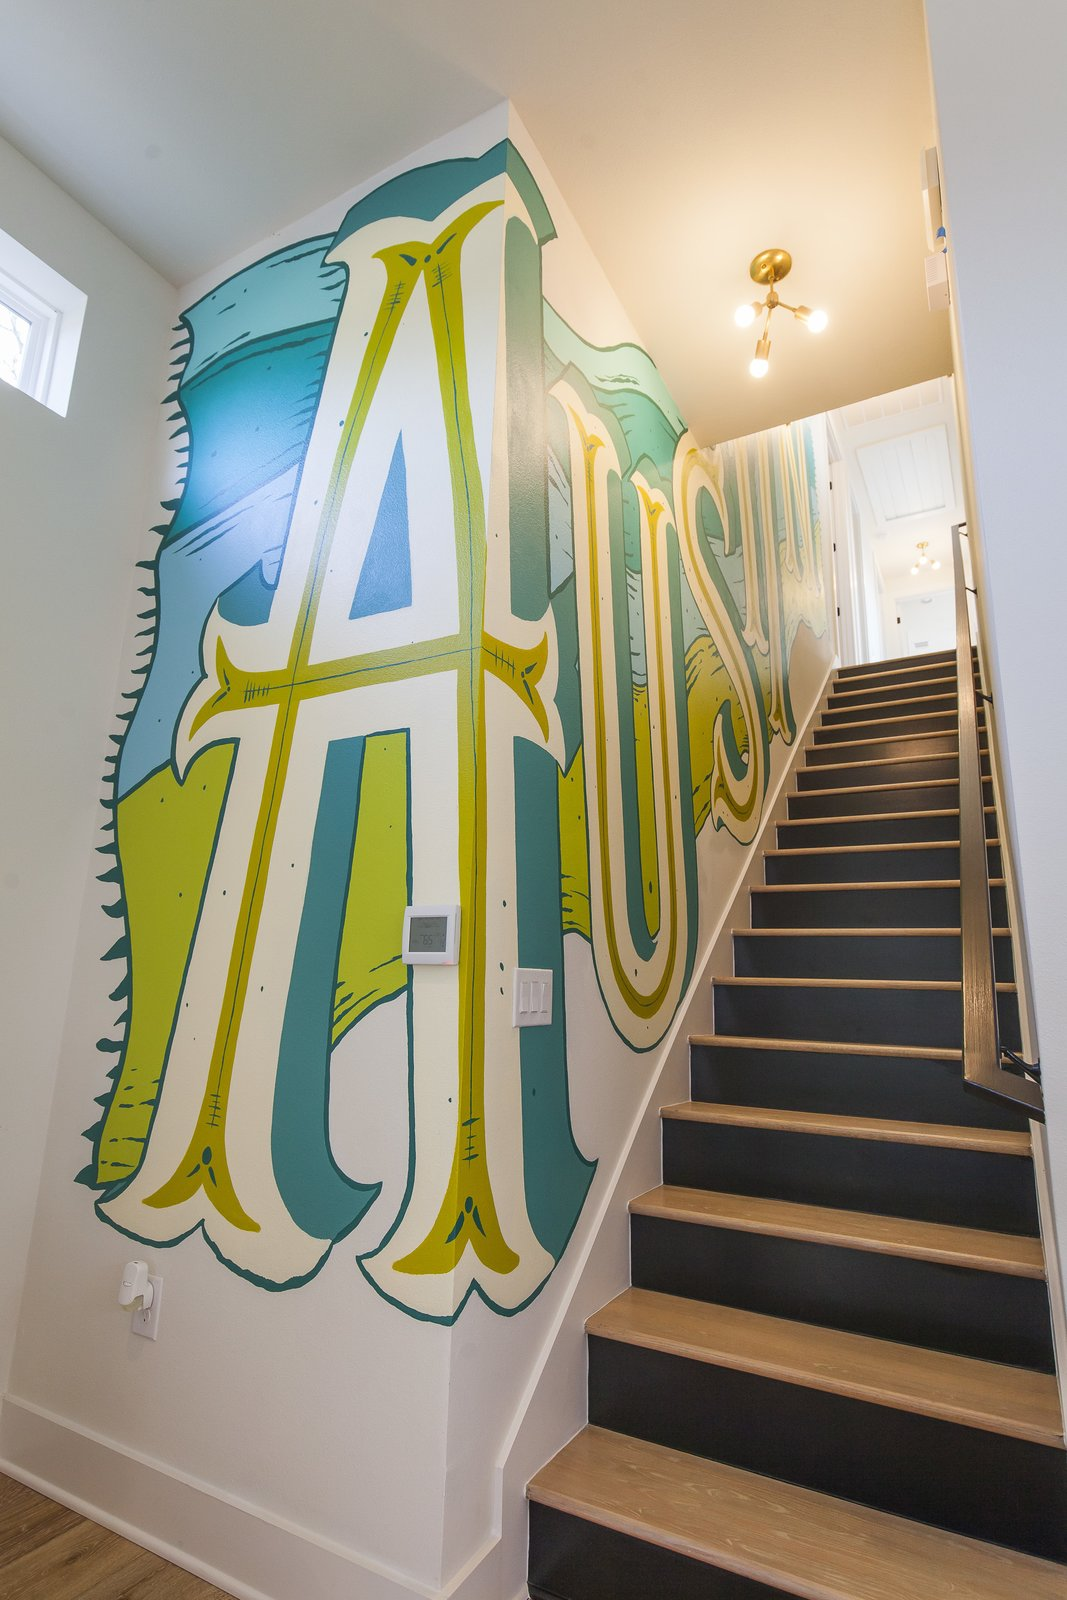 Unit A - Stairwell - This is the custom mural we had designed for the staircase to keep things interesting but also invite some good ole' Austin charm into the house.